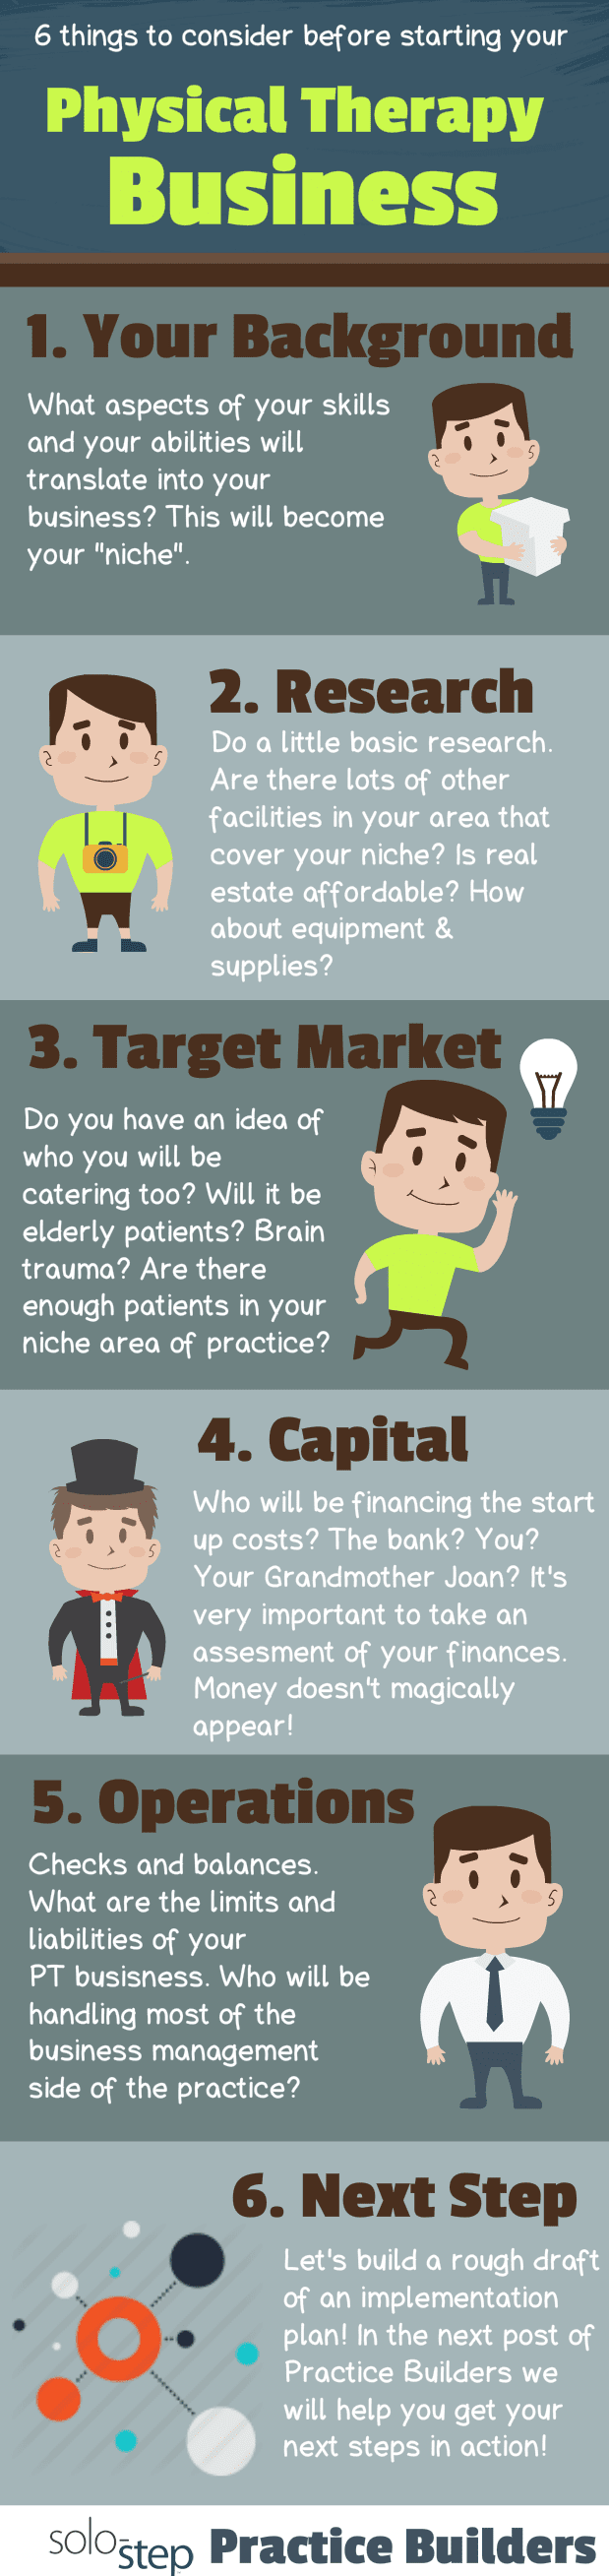 Building your Physical Therapy Business